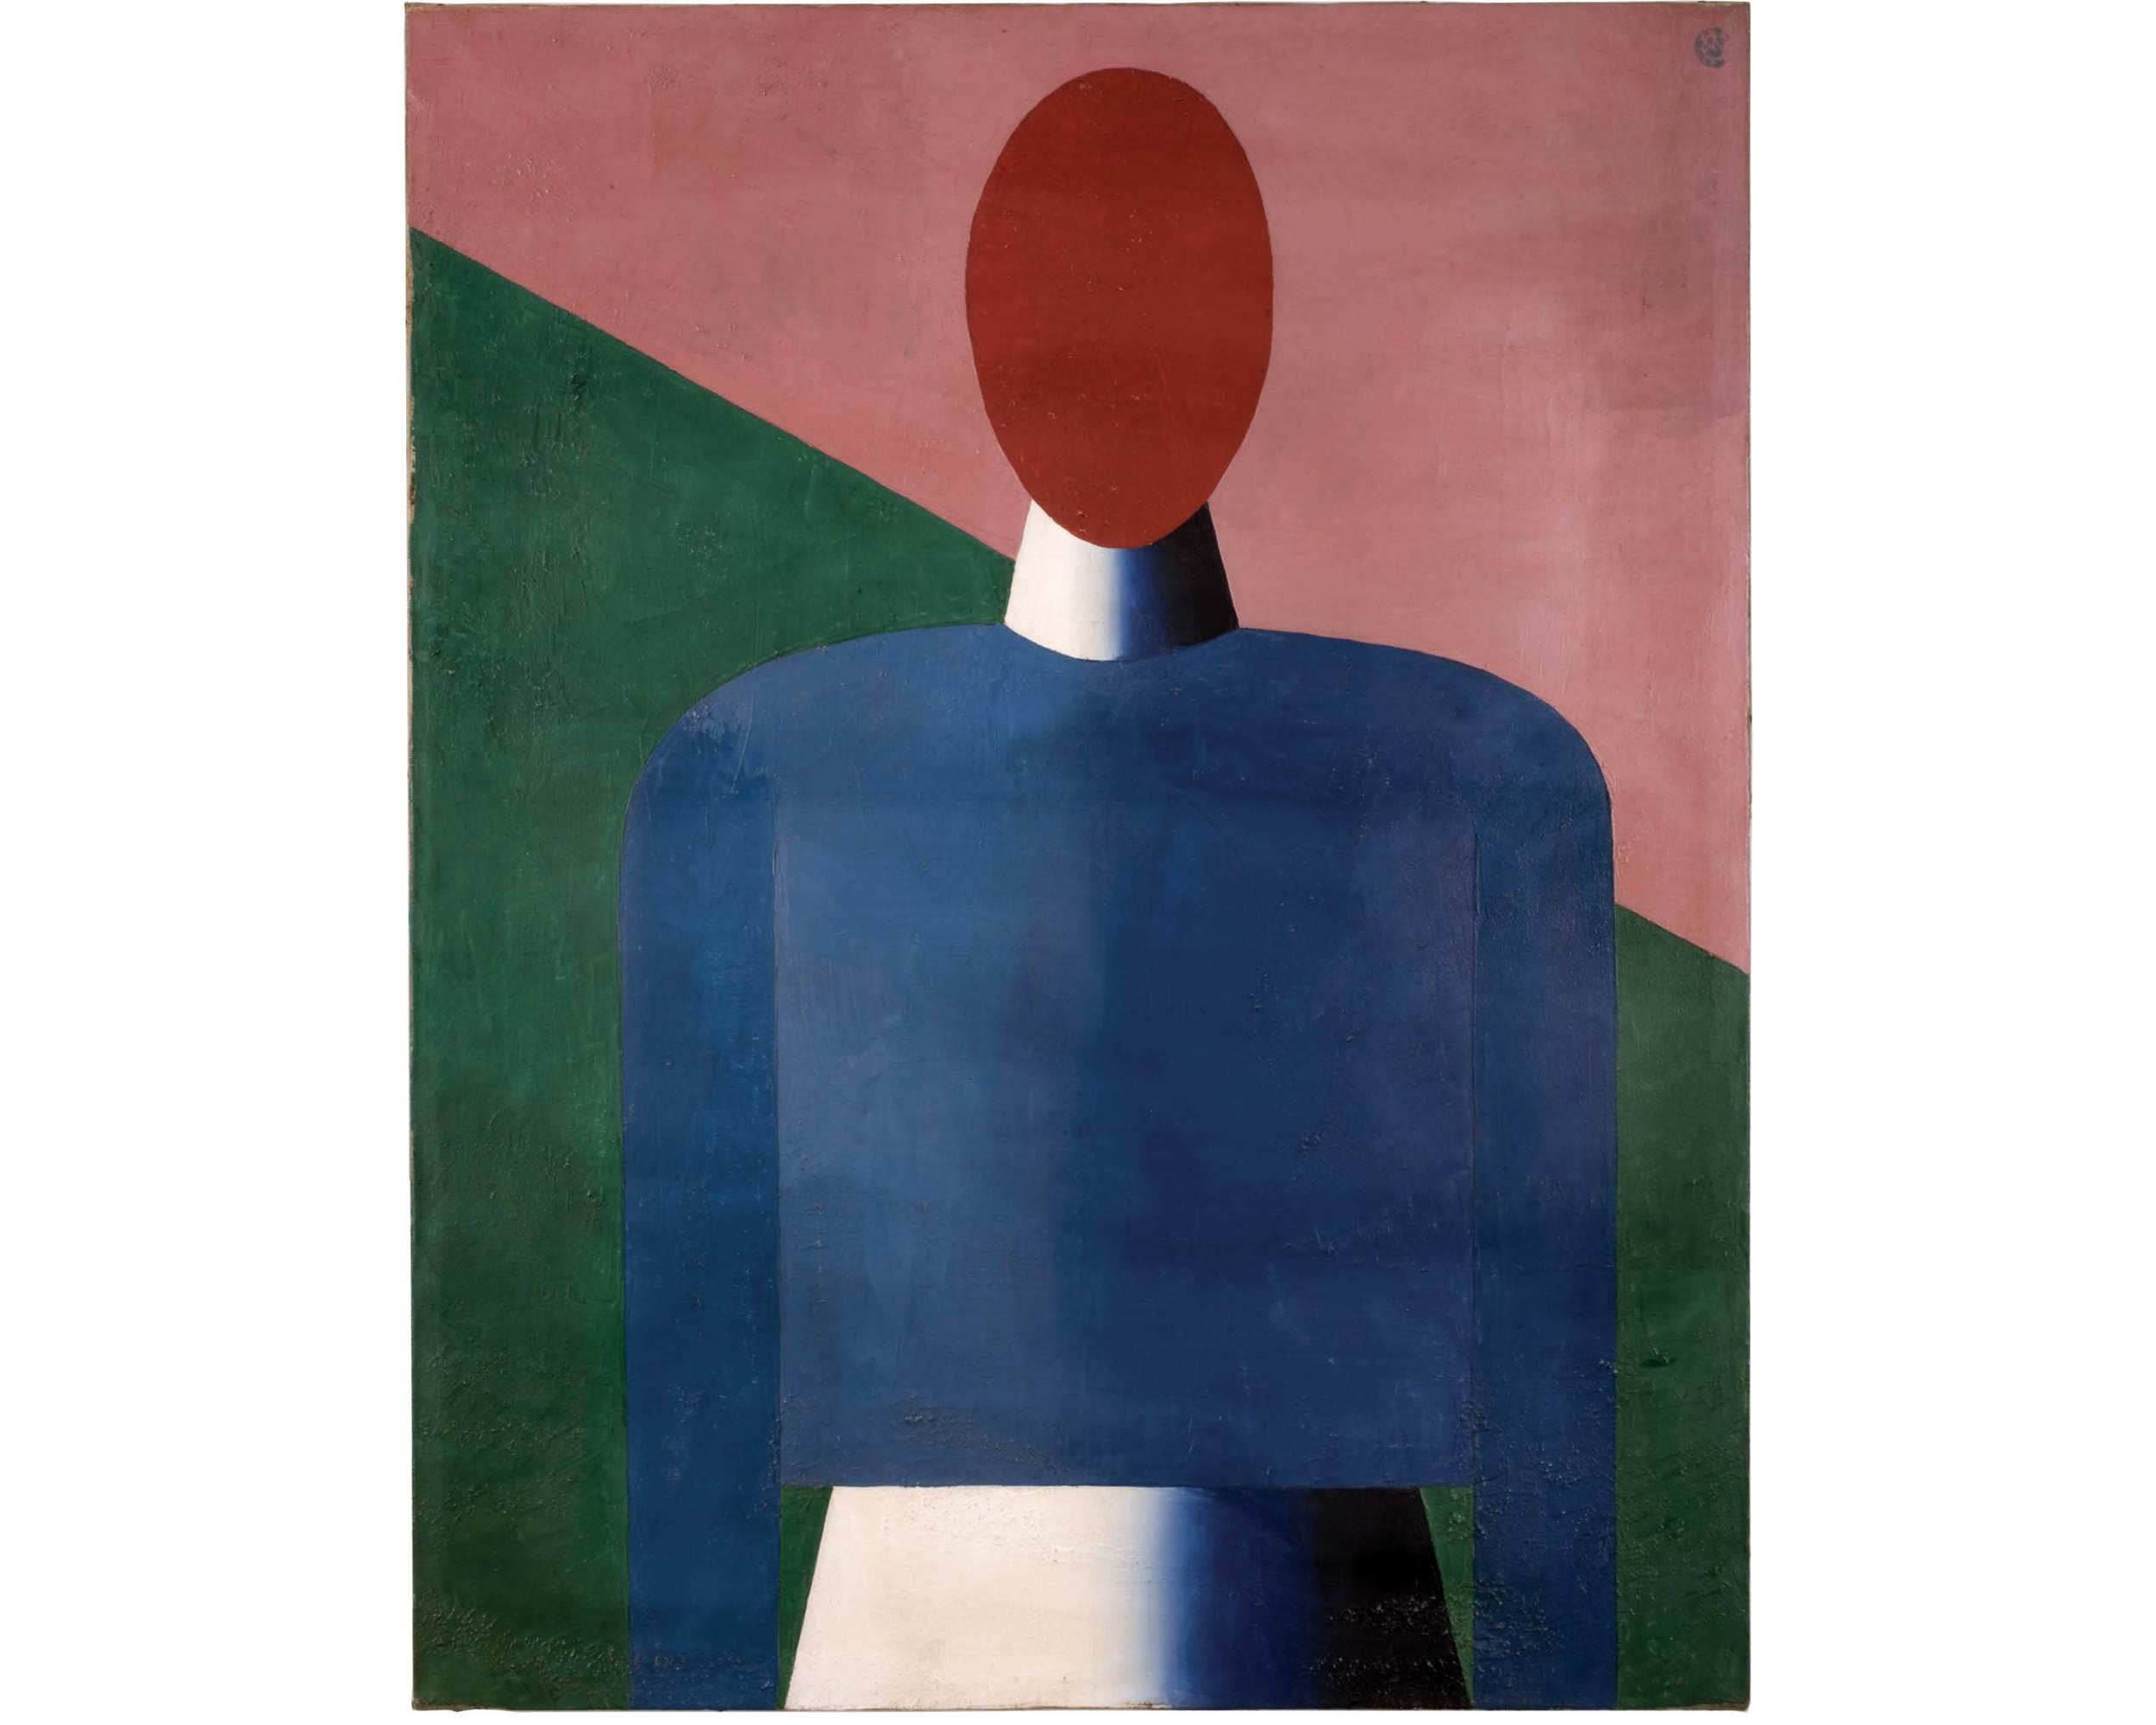 Unattributed, Unsigned. In the Style of Kasimir Malevich.